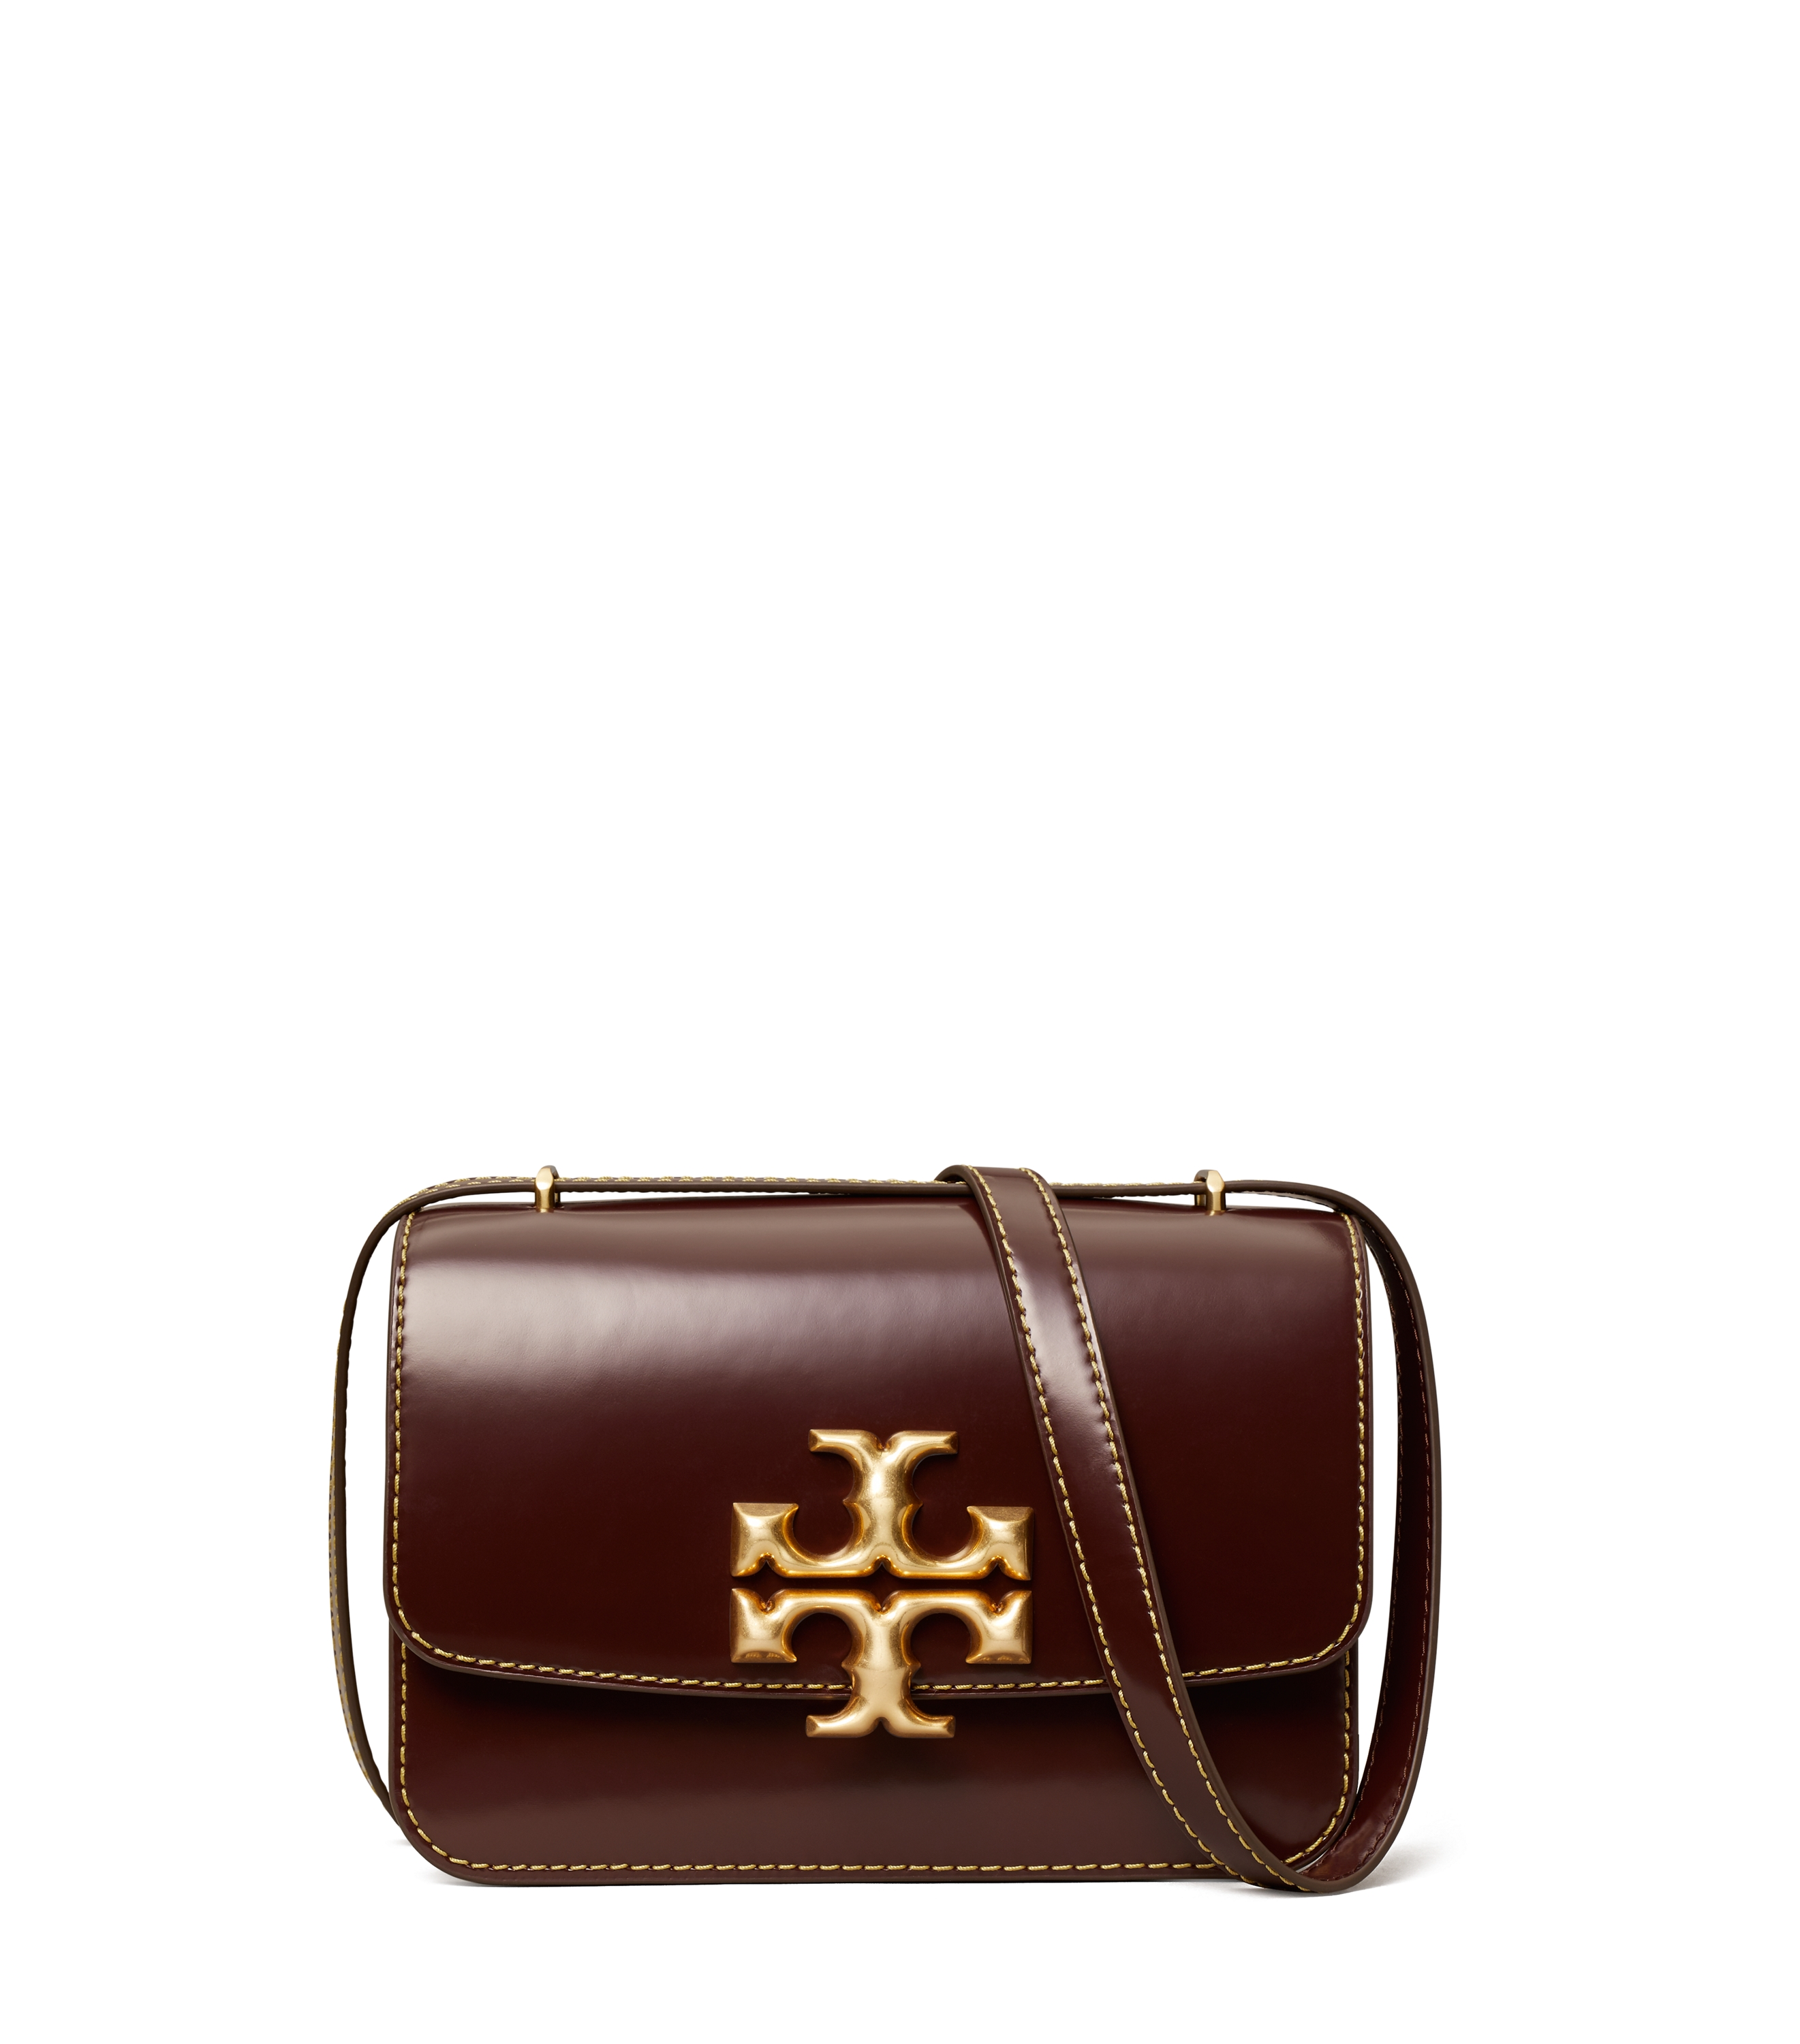 tory burch fall winter 2021 collection